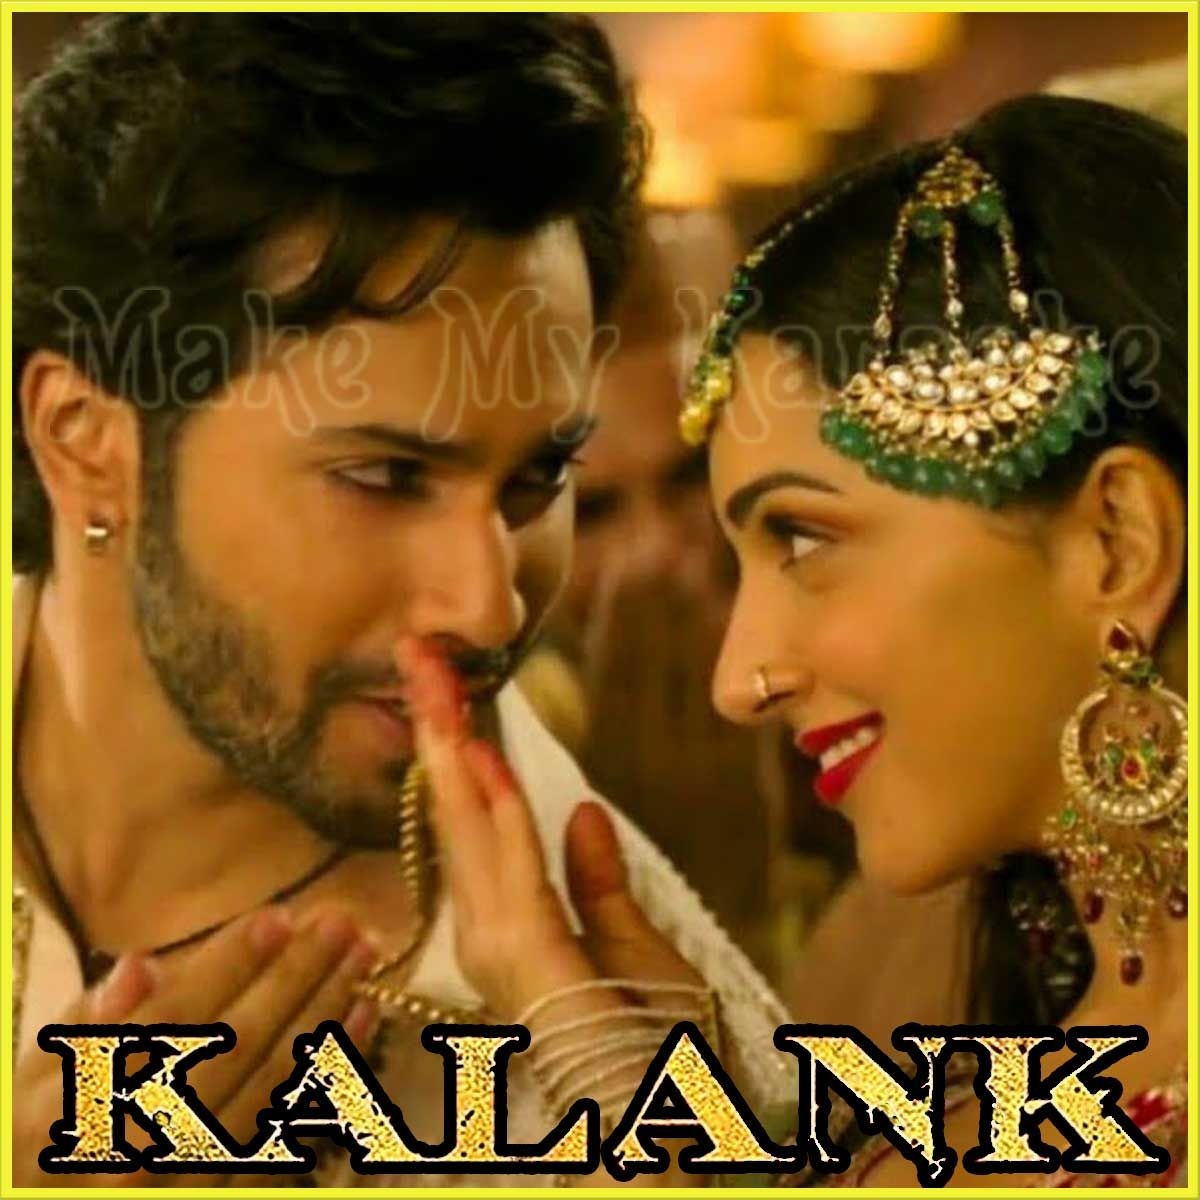 Baki Sab First Class Hai Video Karaoke With Lyrics Kalank Video Karaoke Best Karaoke Songs Karaoke Karaoke Songs